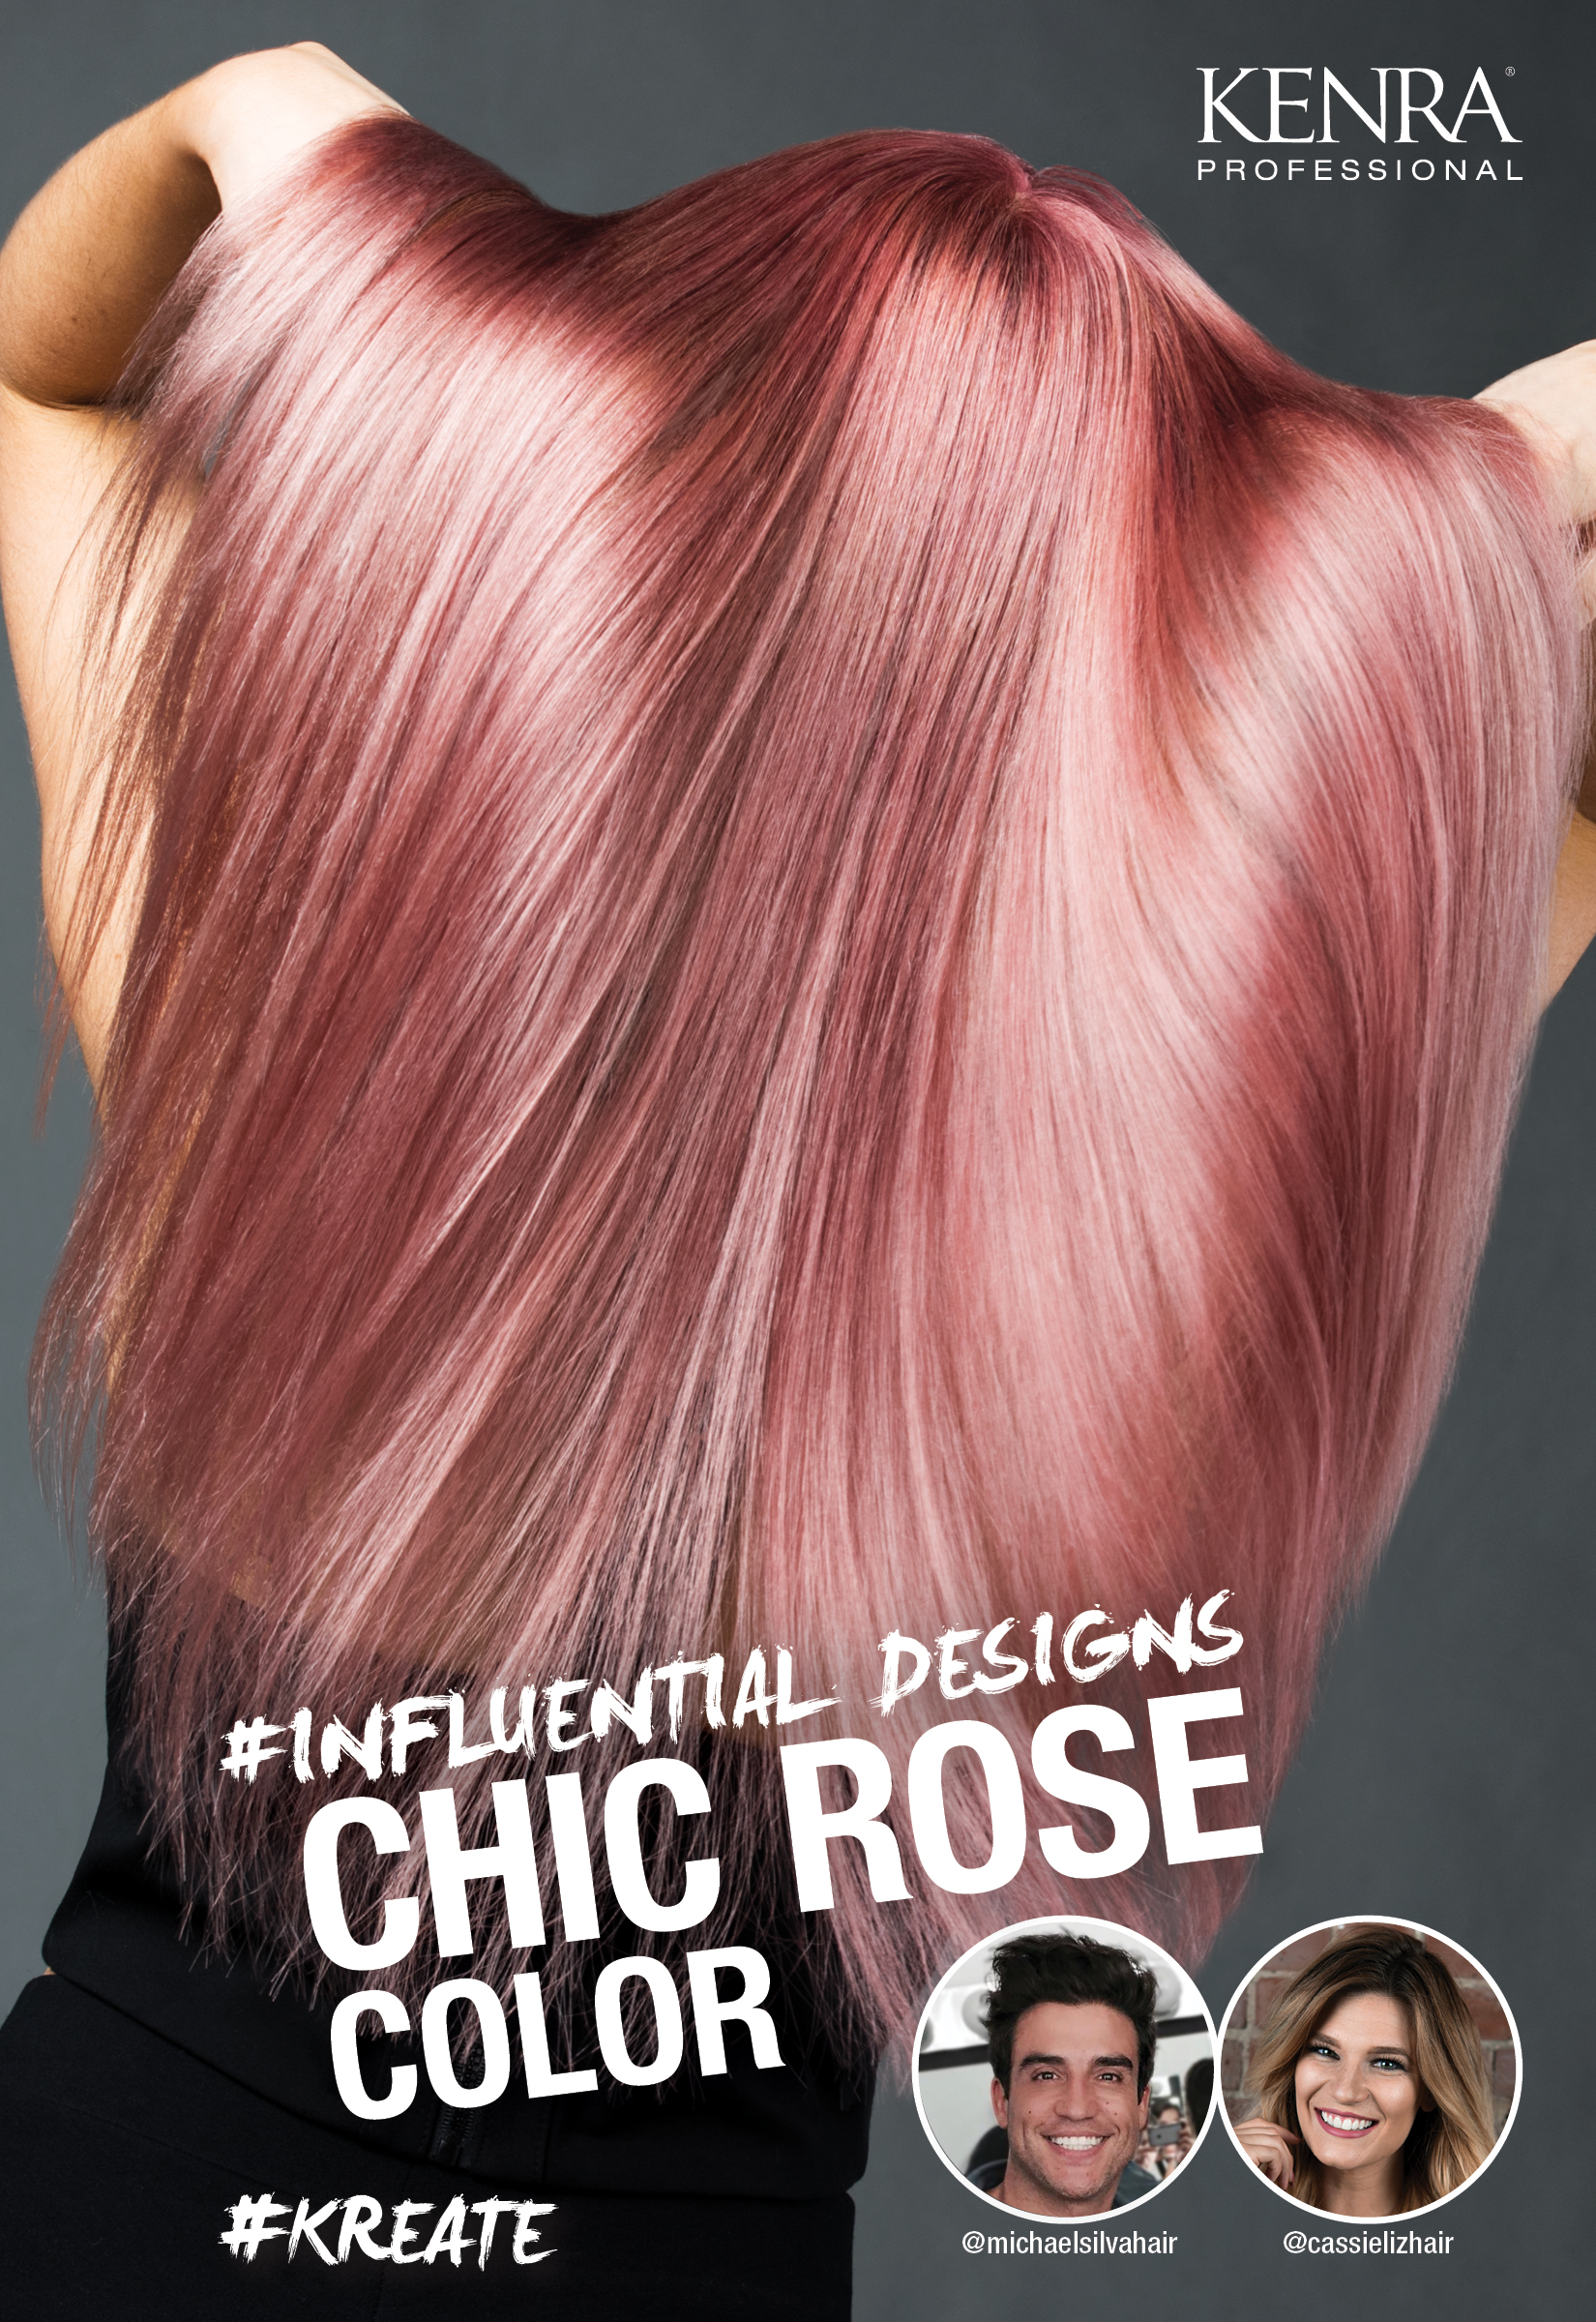 99473_ID_Chic_Rose_Color_web.jpg